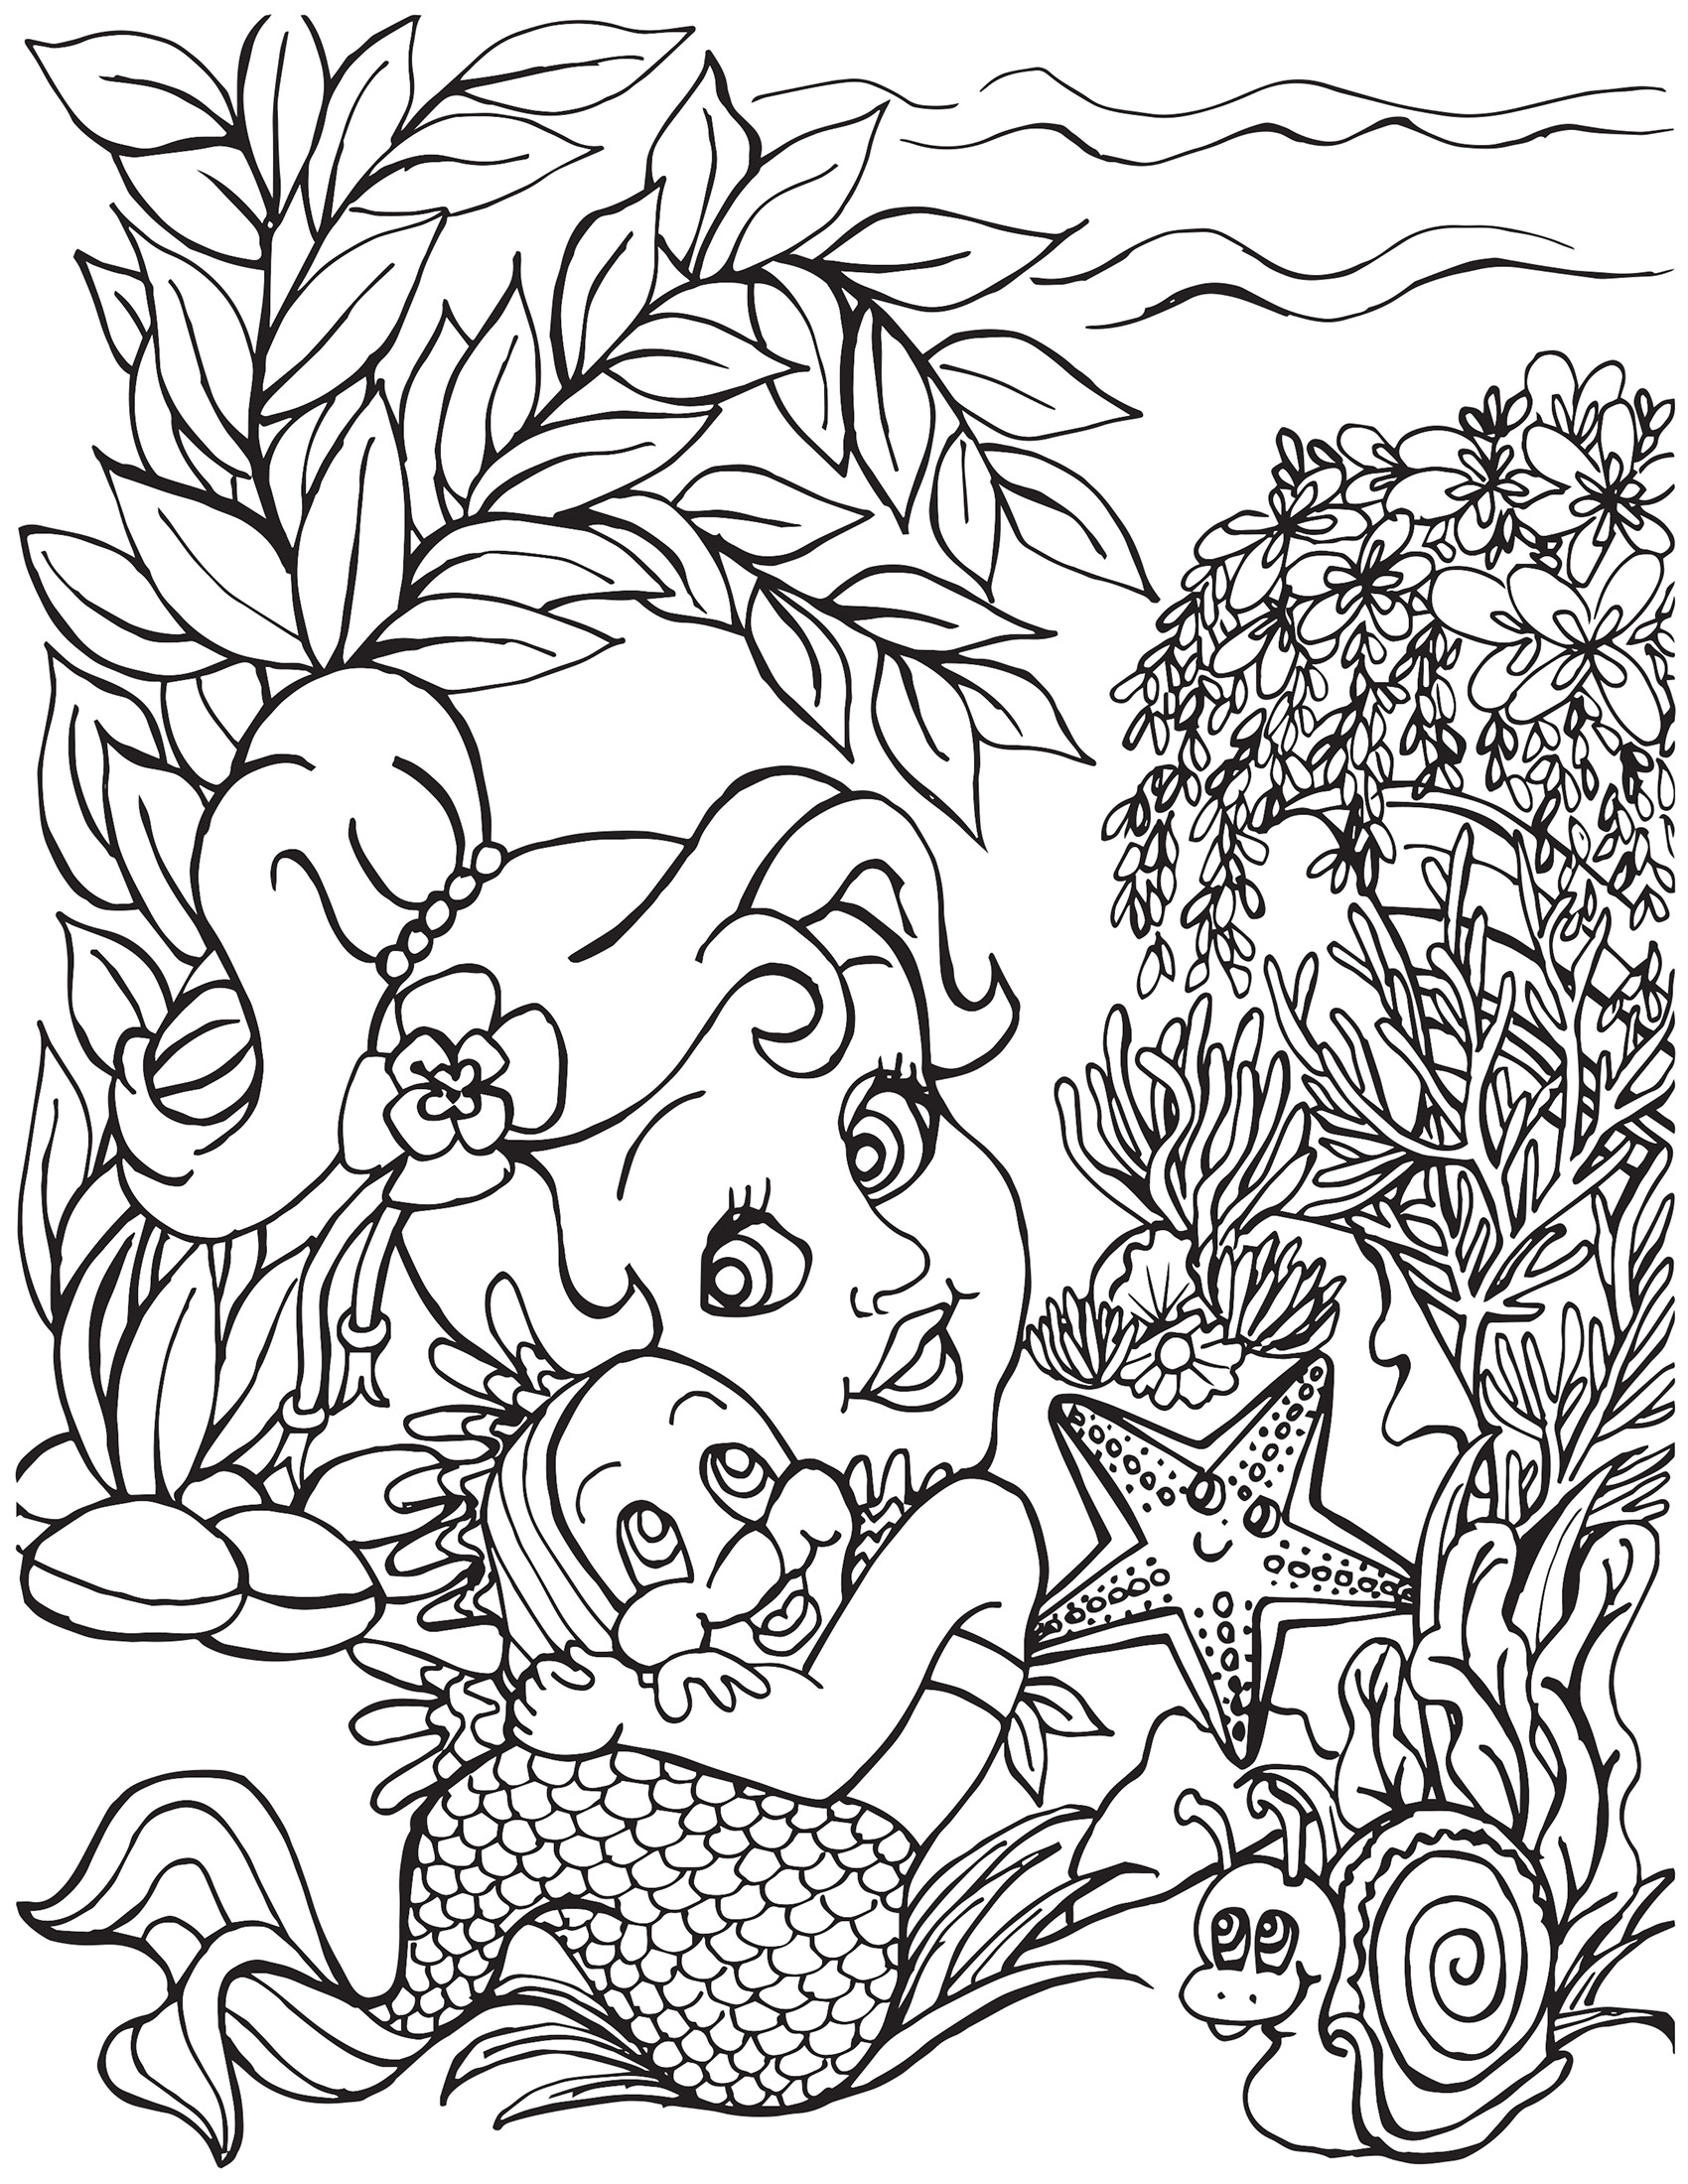 Happy Little Mermaid with Rainbow Fish and Starfish Coloring Page